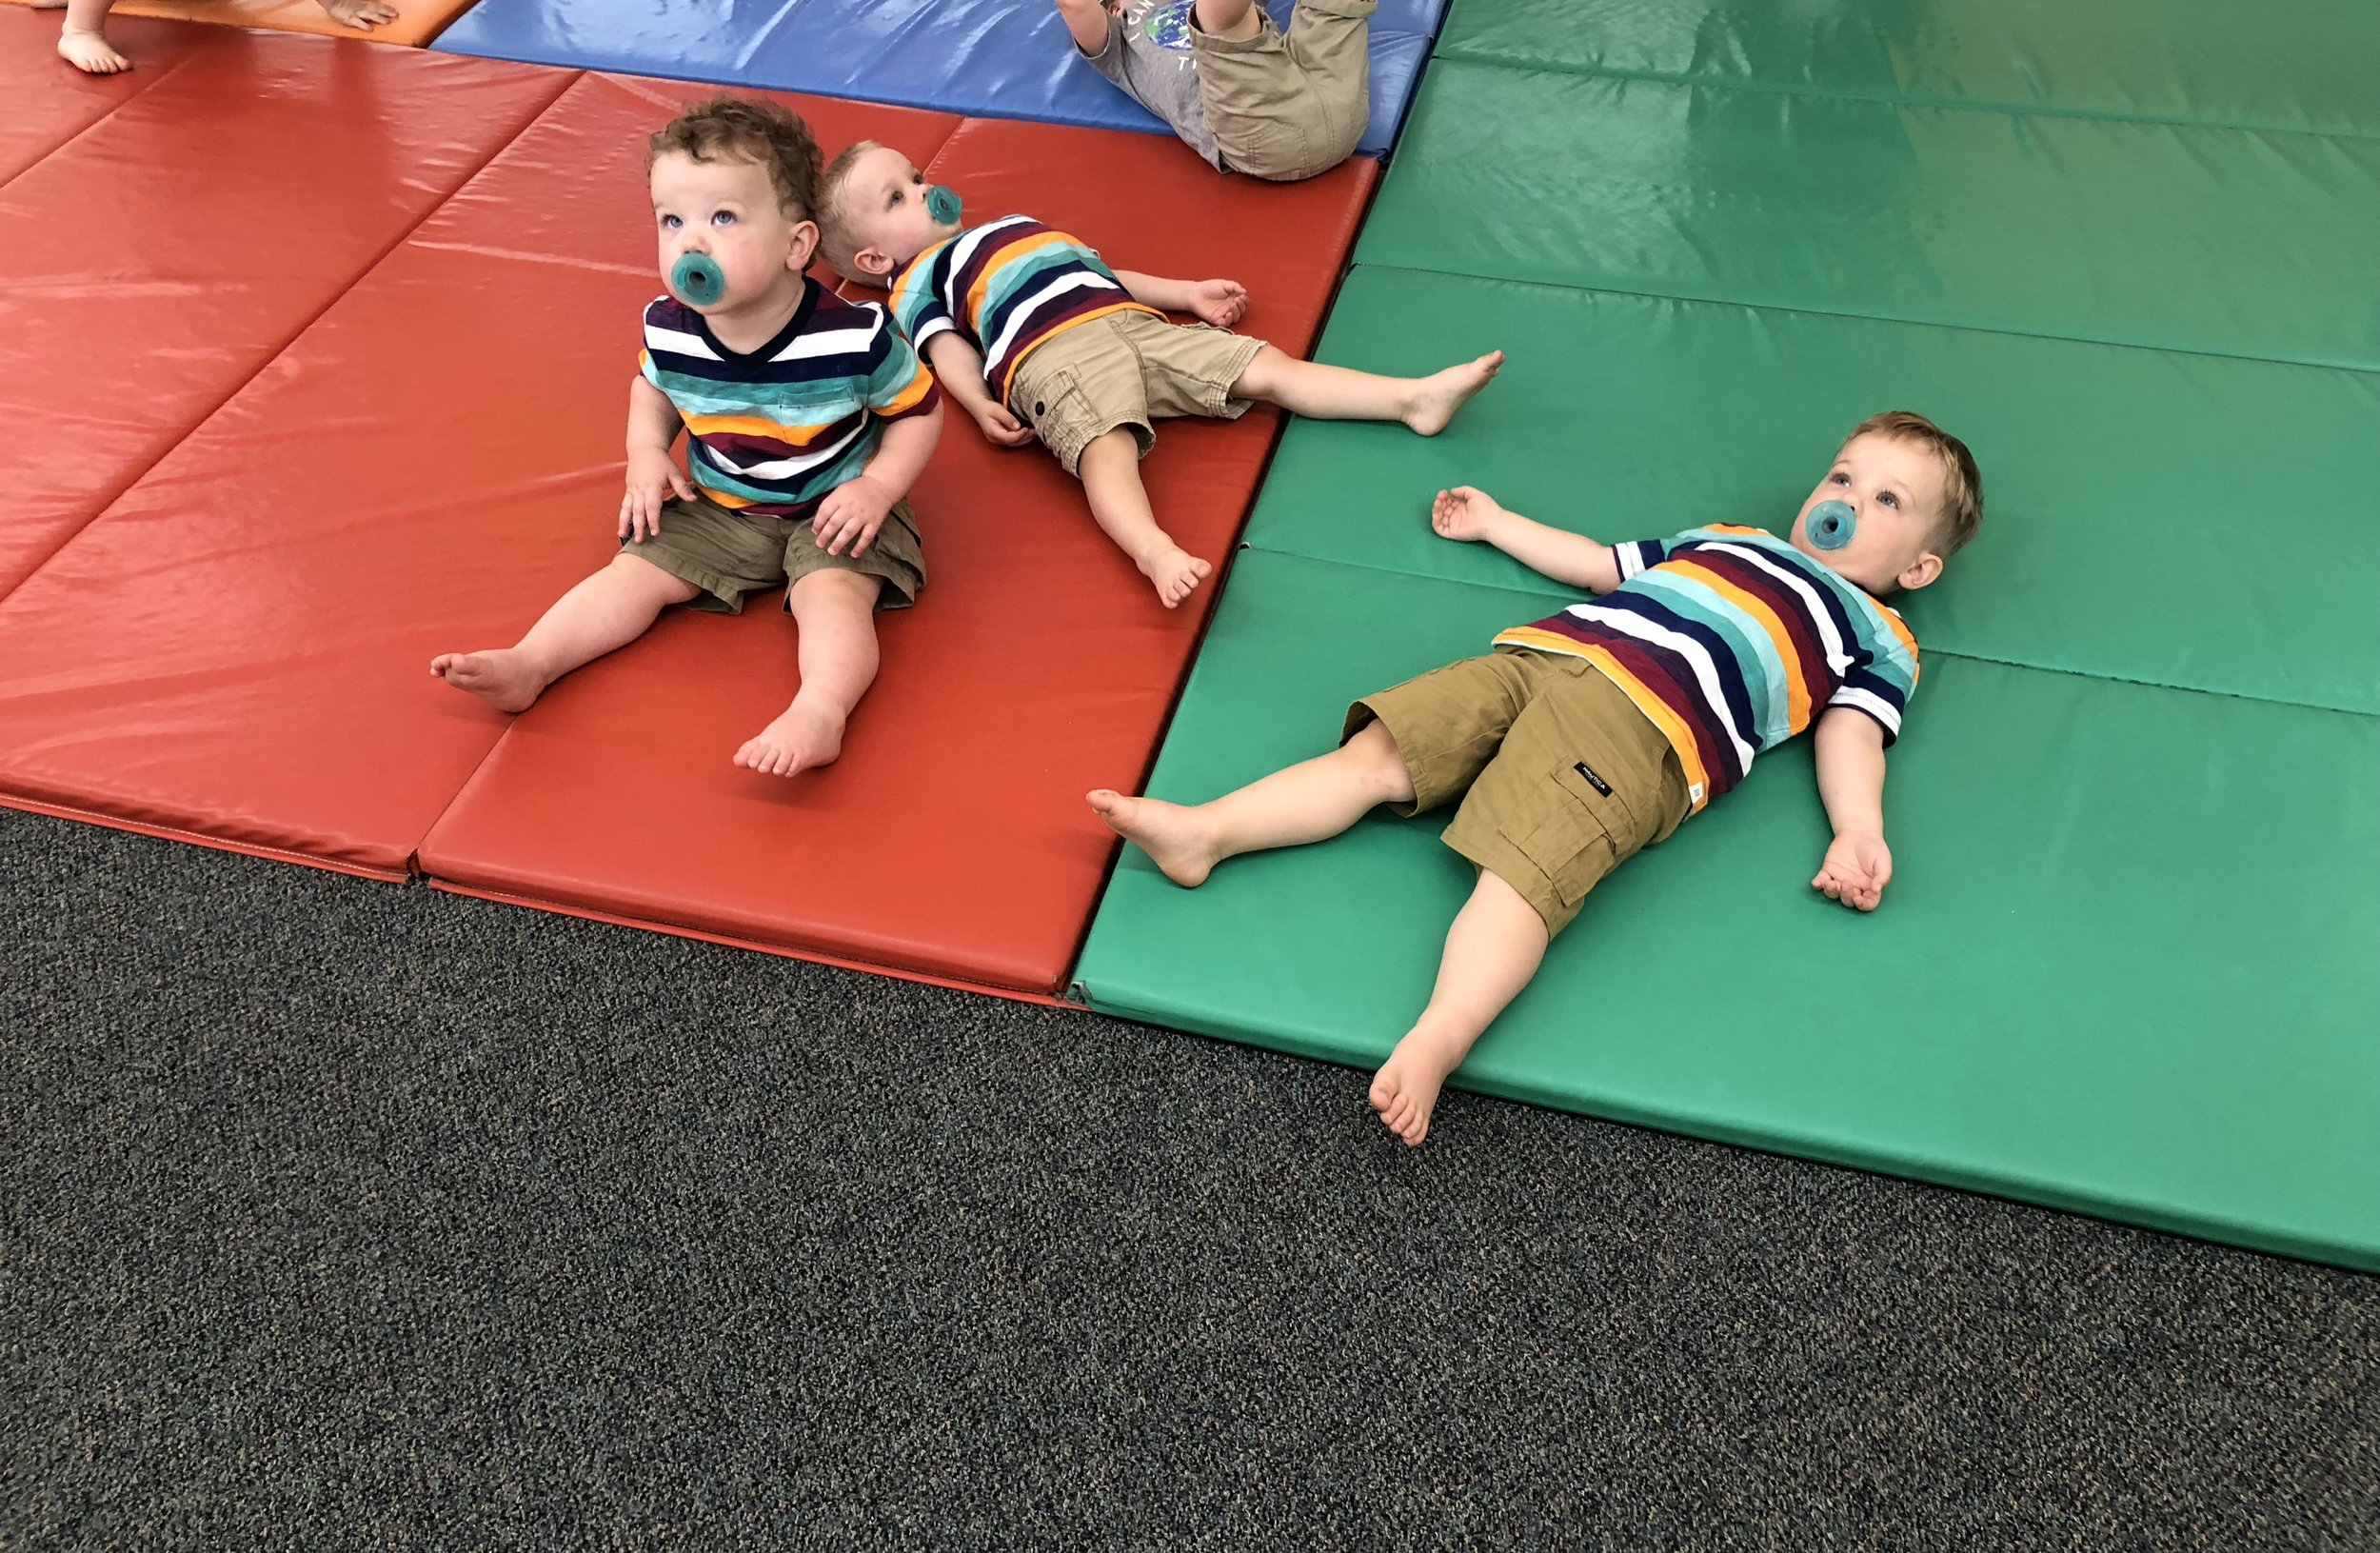 Andrew, Colin and Matthew look up at the parachute at the end of Gymboree class. They are worn out from playing with friends!